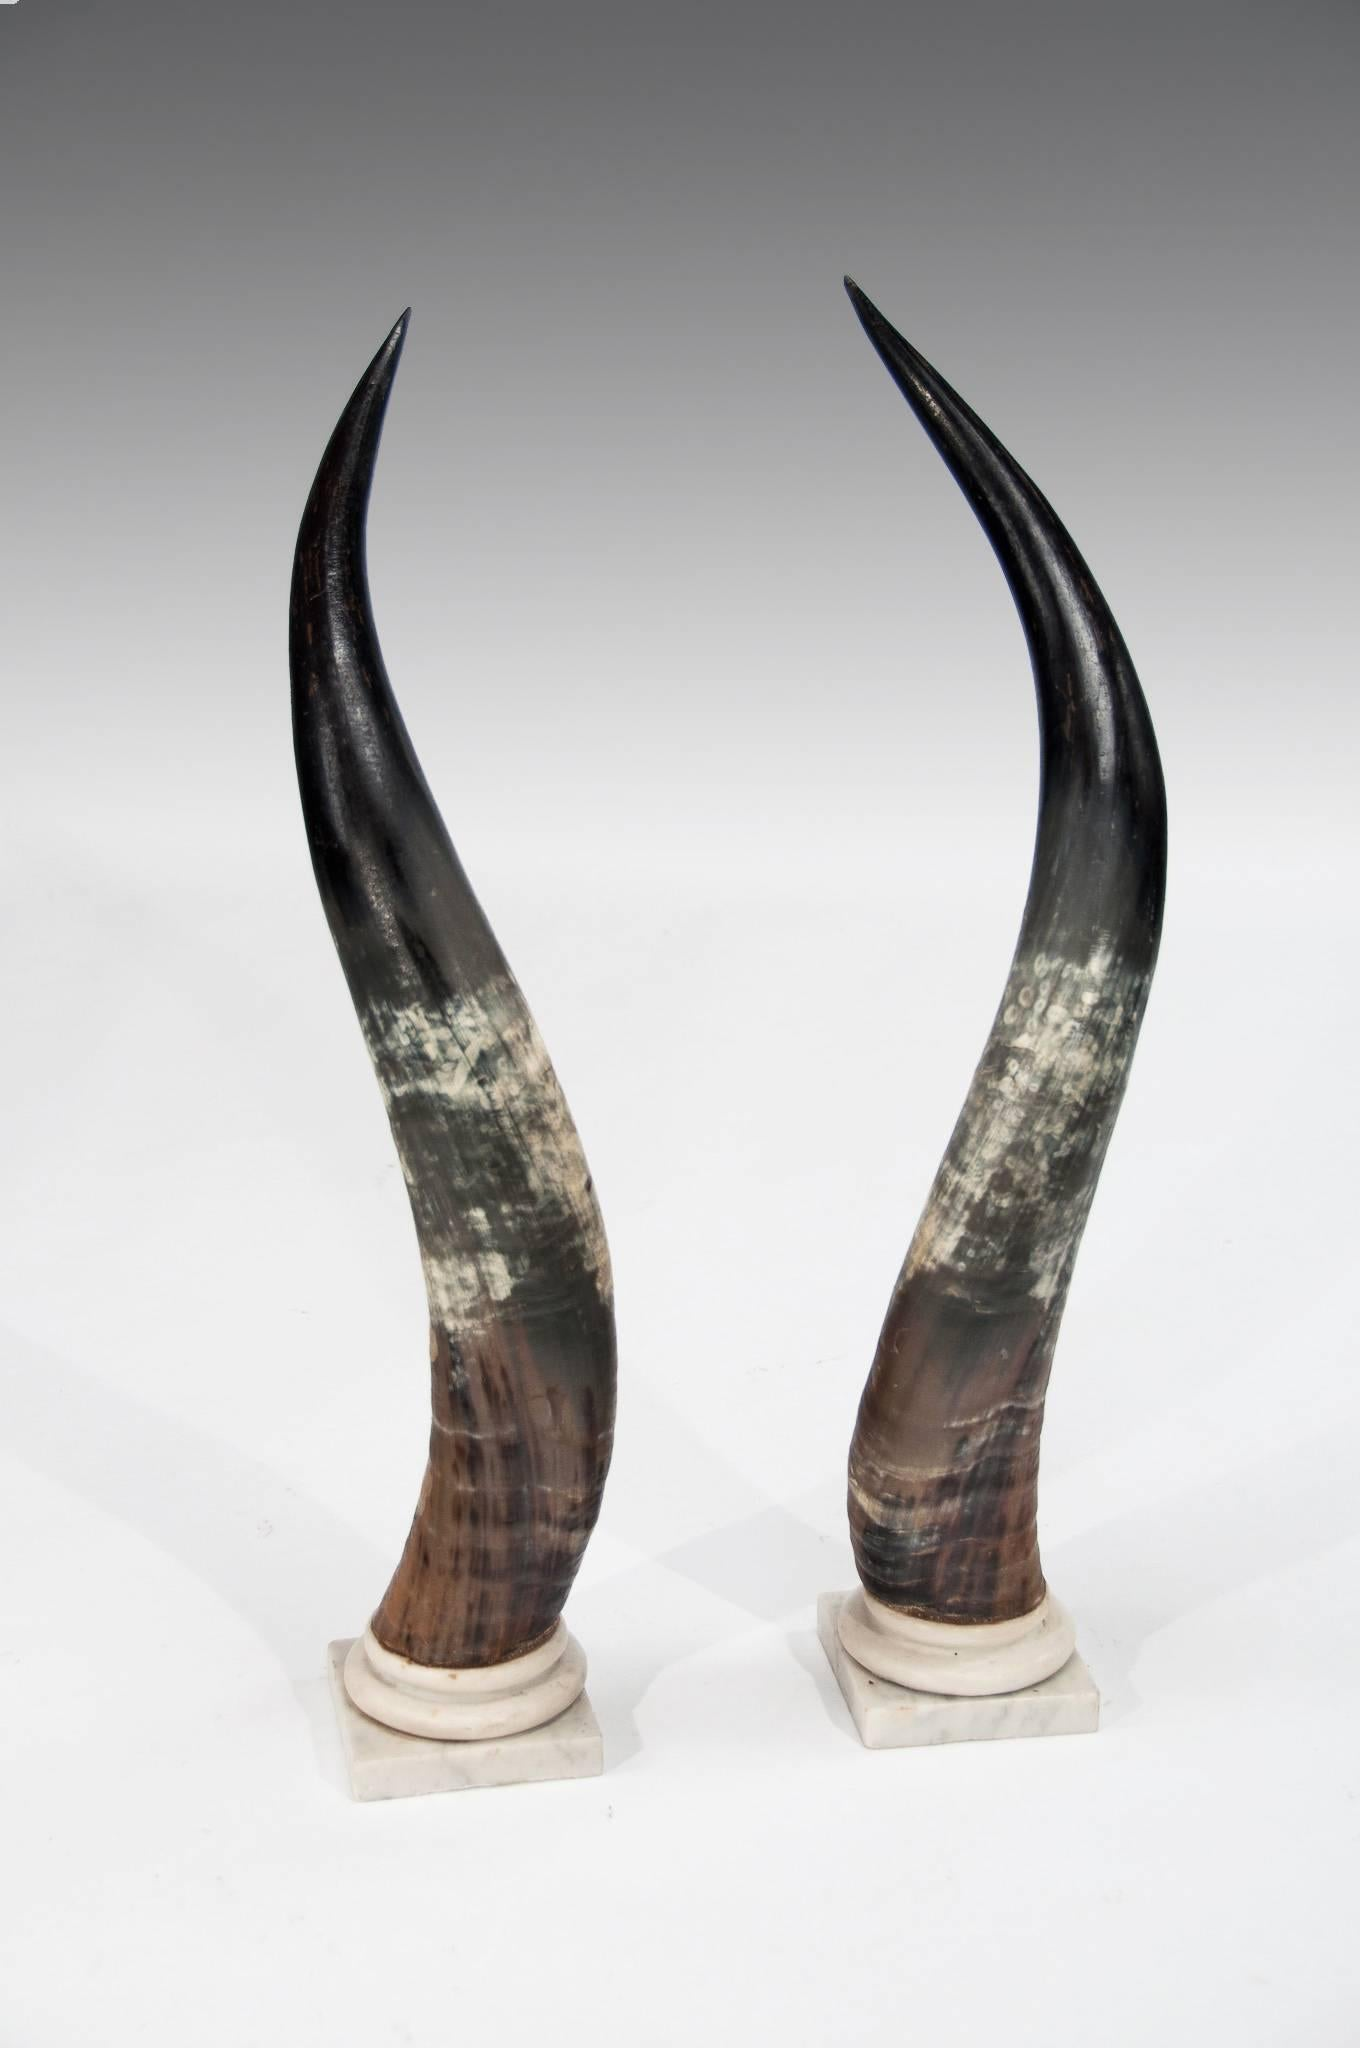 Antique Design for Artistic Interior US Exporter Bull Horn for Home Decor